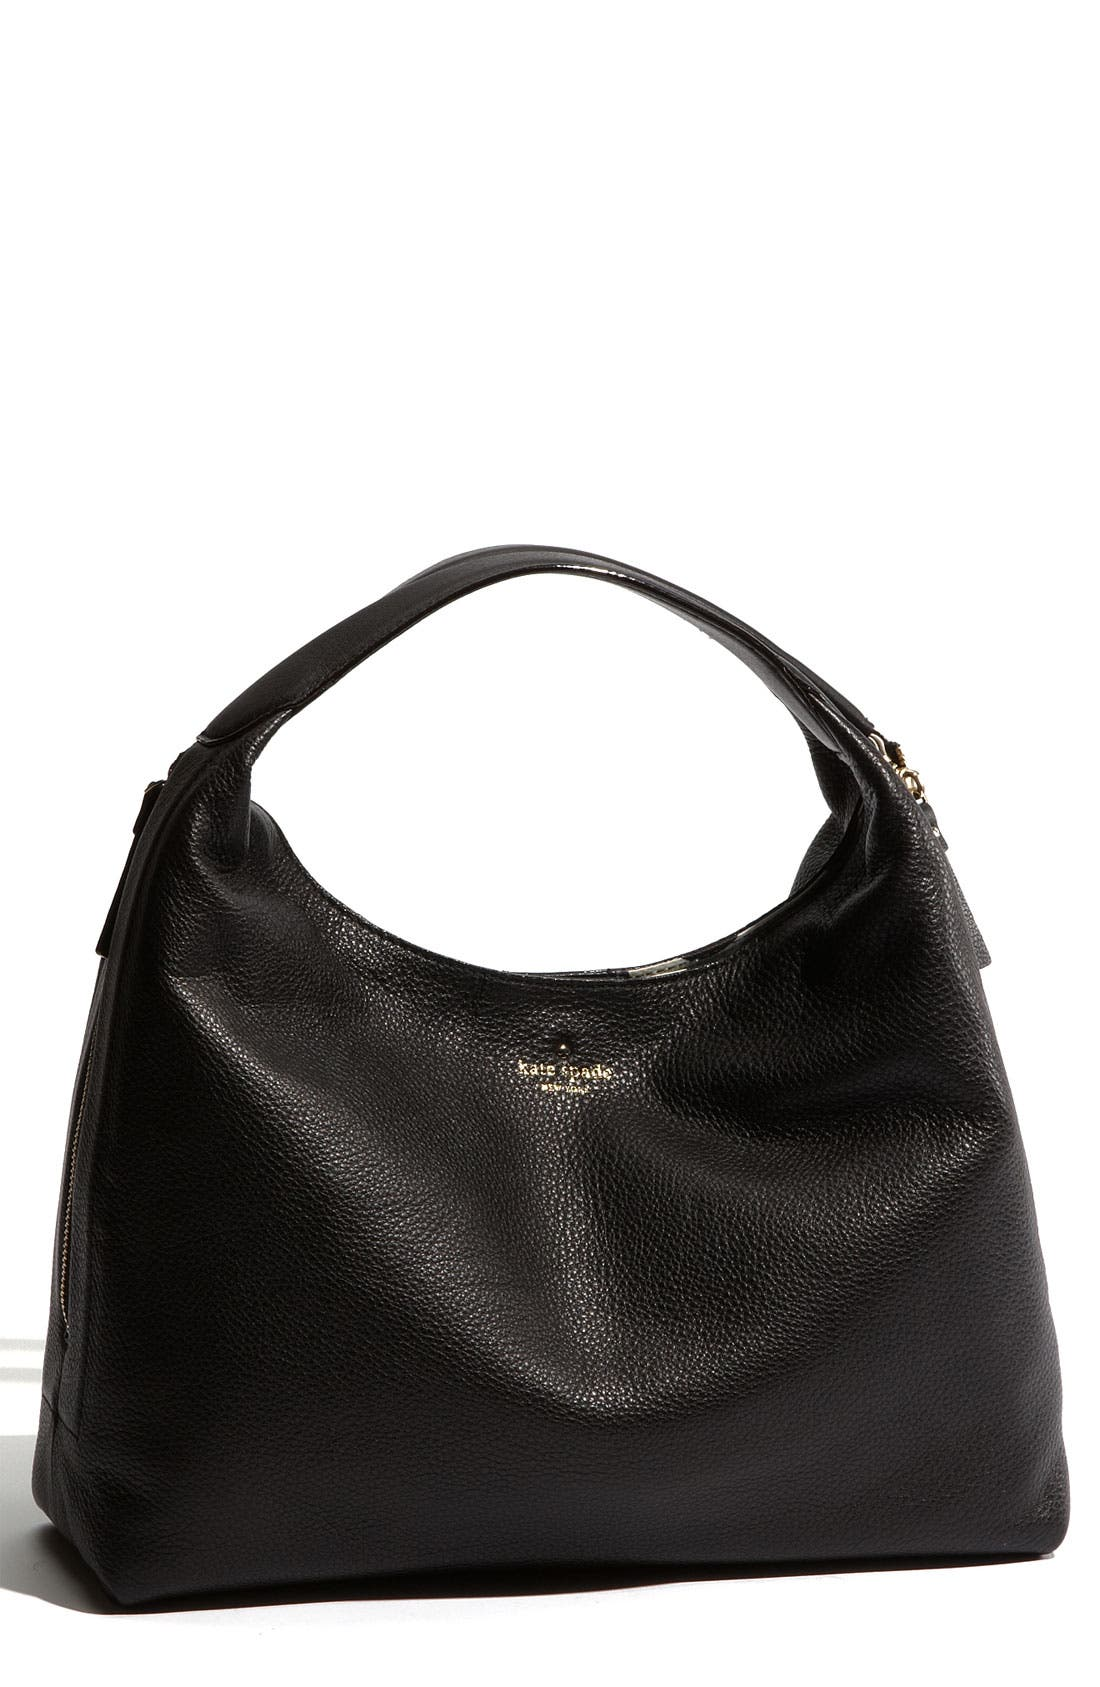 Main Image - kate spade new york 'mansfield juniper' leather hobo